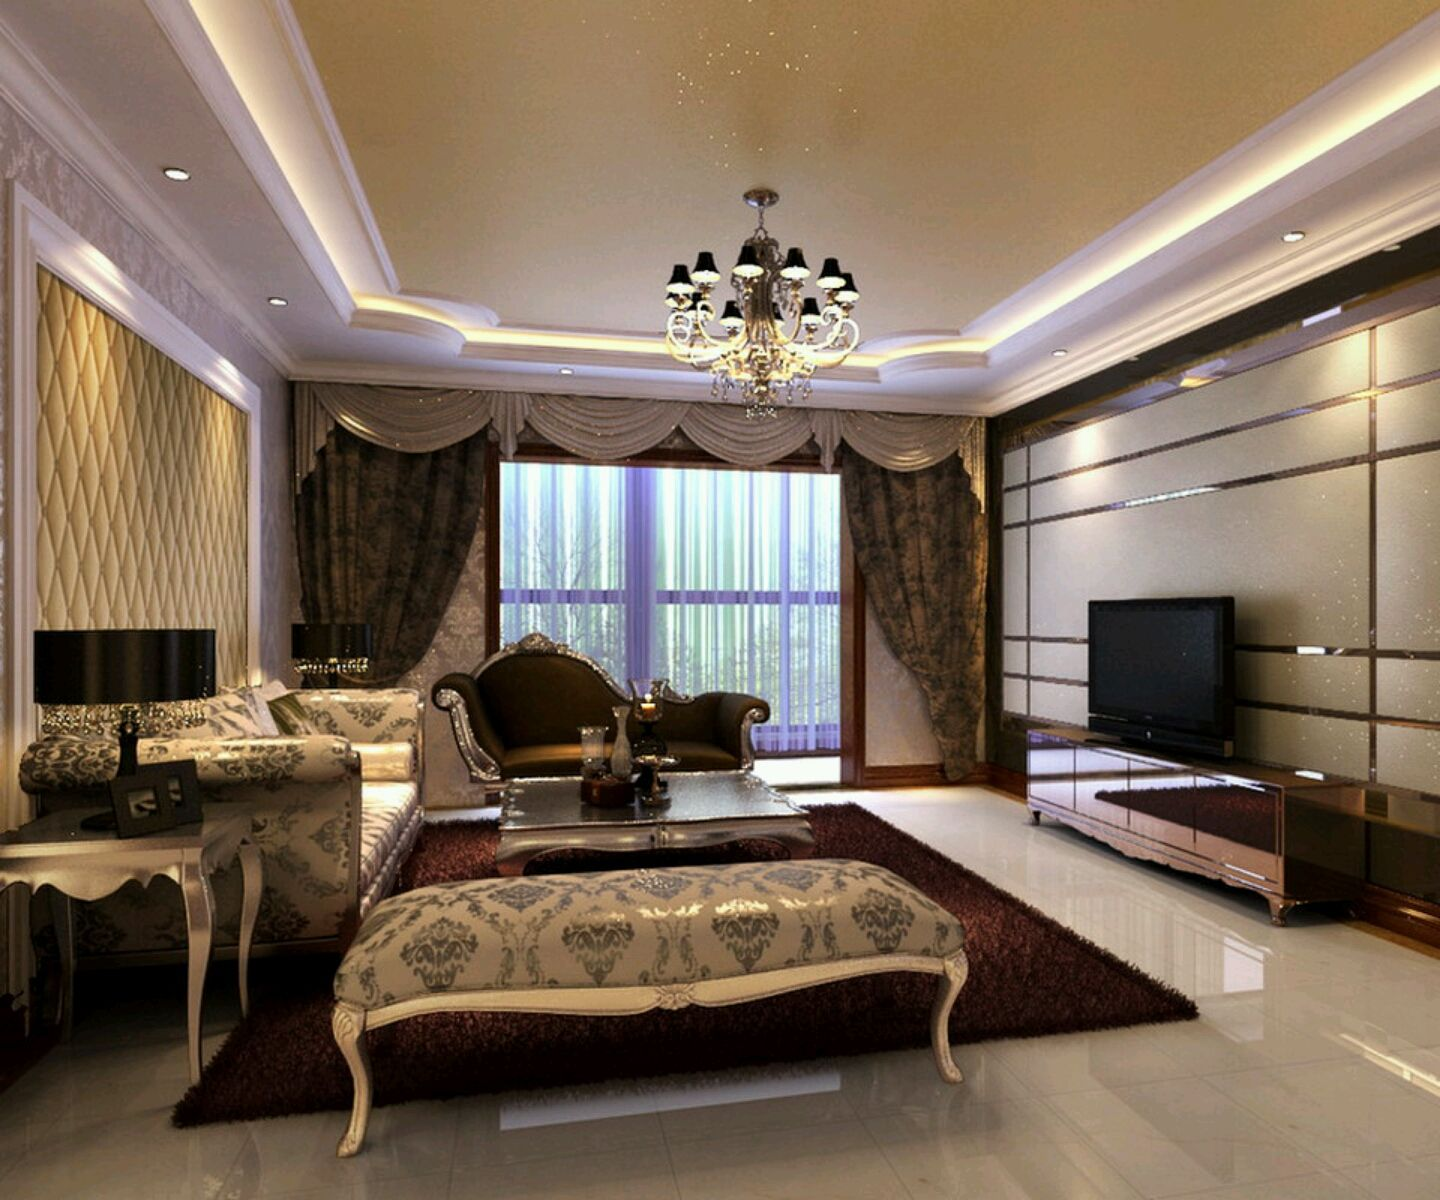 luxurious home interior architecture designs - Design Interior Home